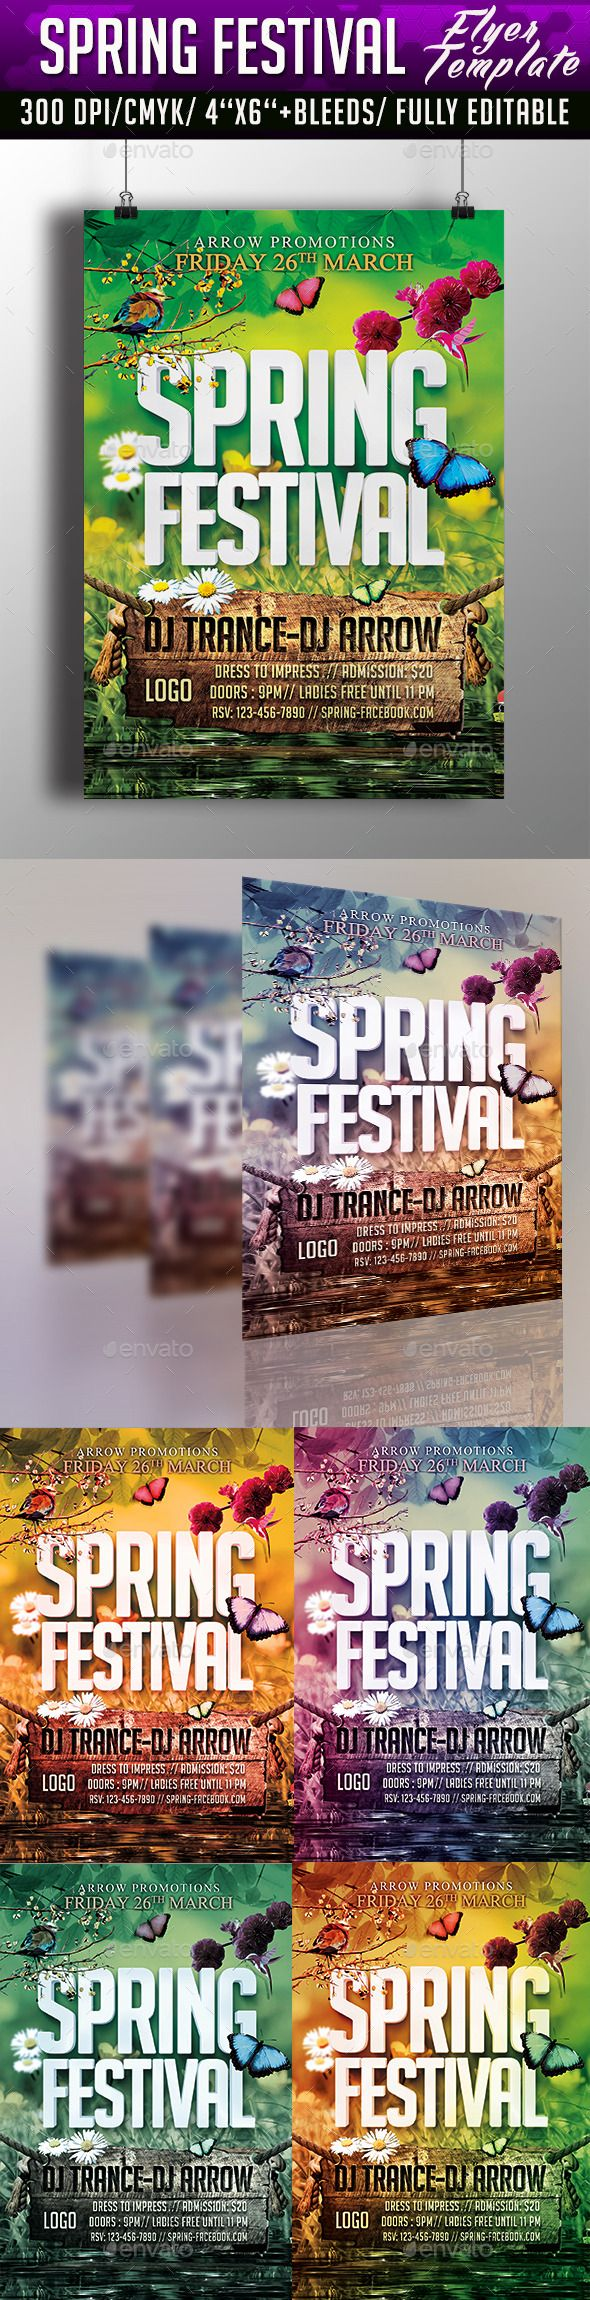 Spring Festival Flyer Template  Photoshop Psd Spring Party New